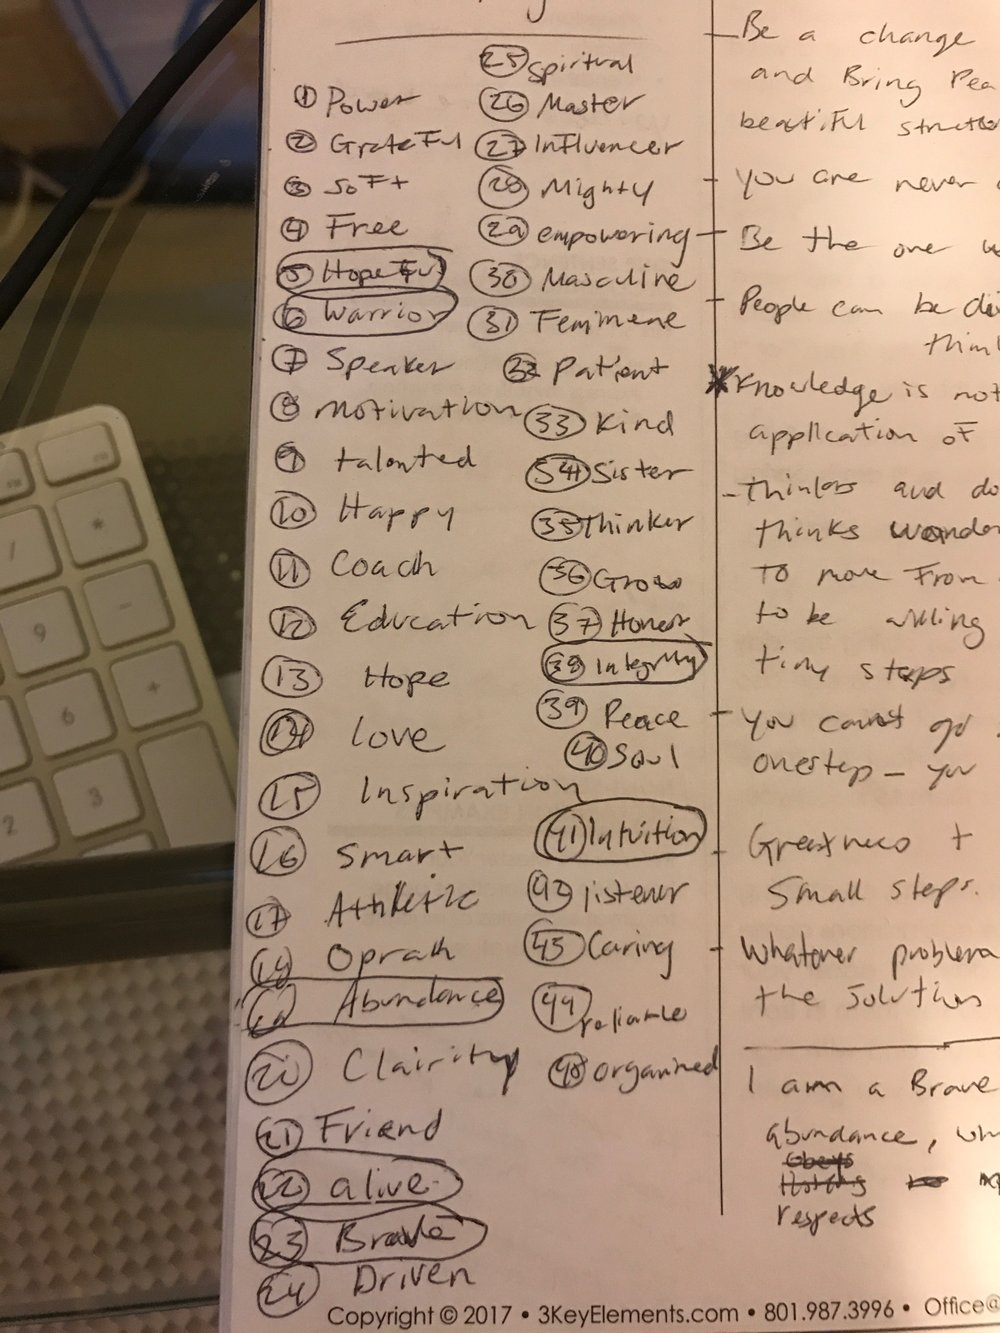 My to-be list with 40+ qualities I'd like to emulate. The 7 circled are those that resonate most with me and are combined to create my declaration statement.